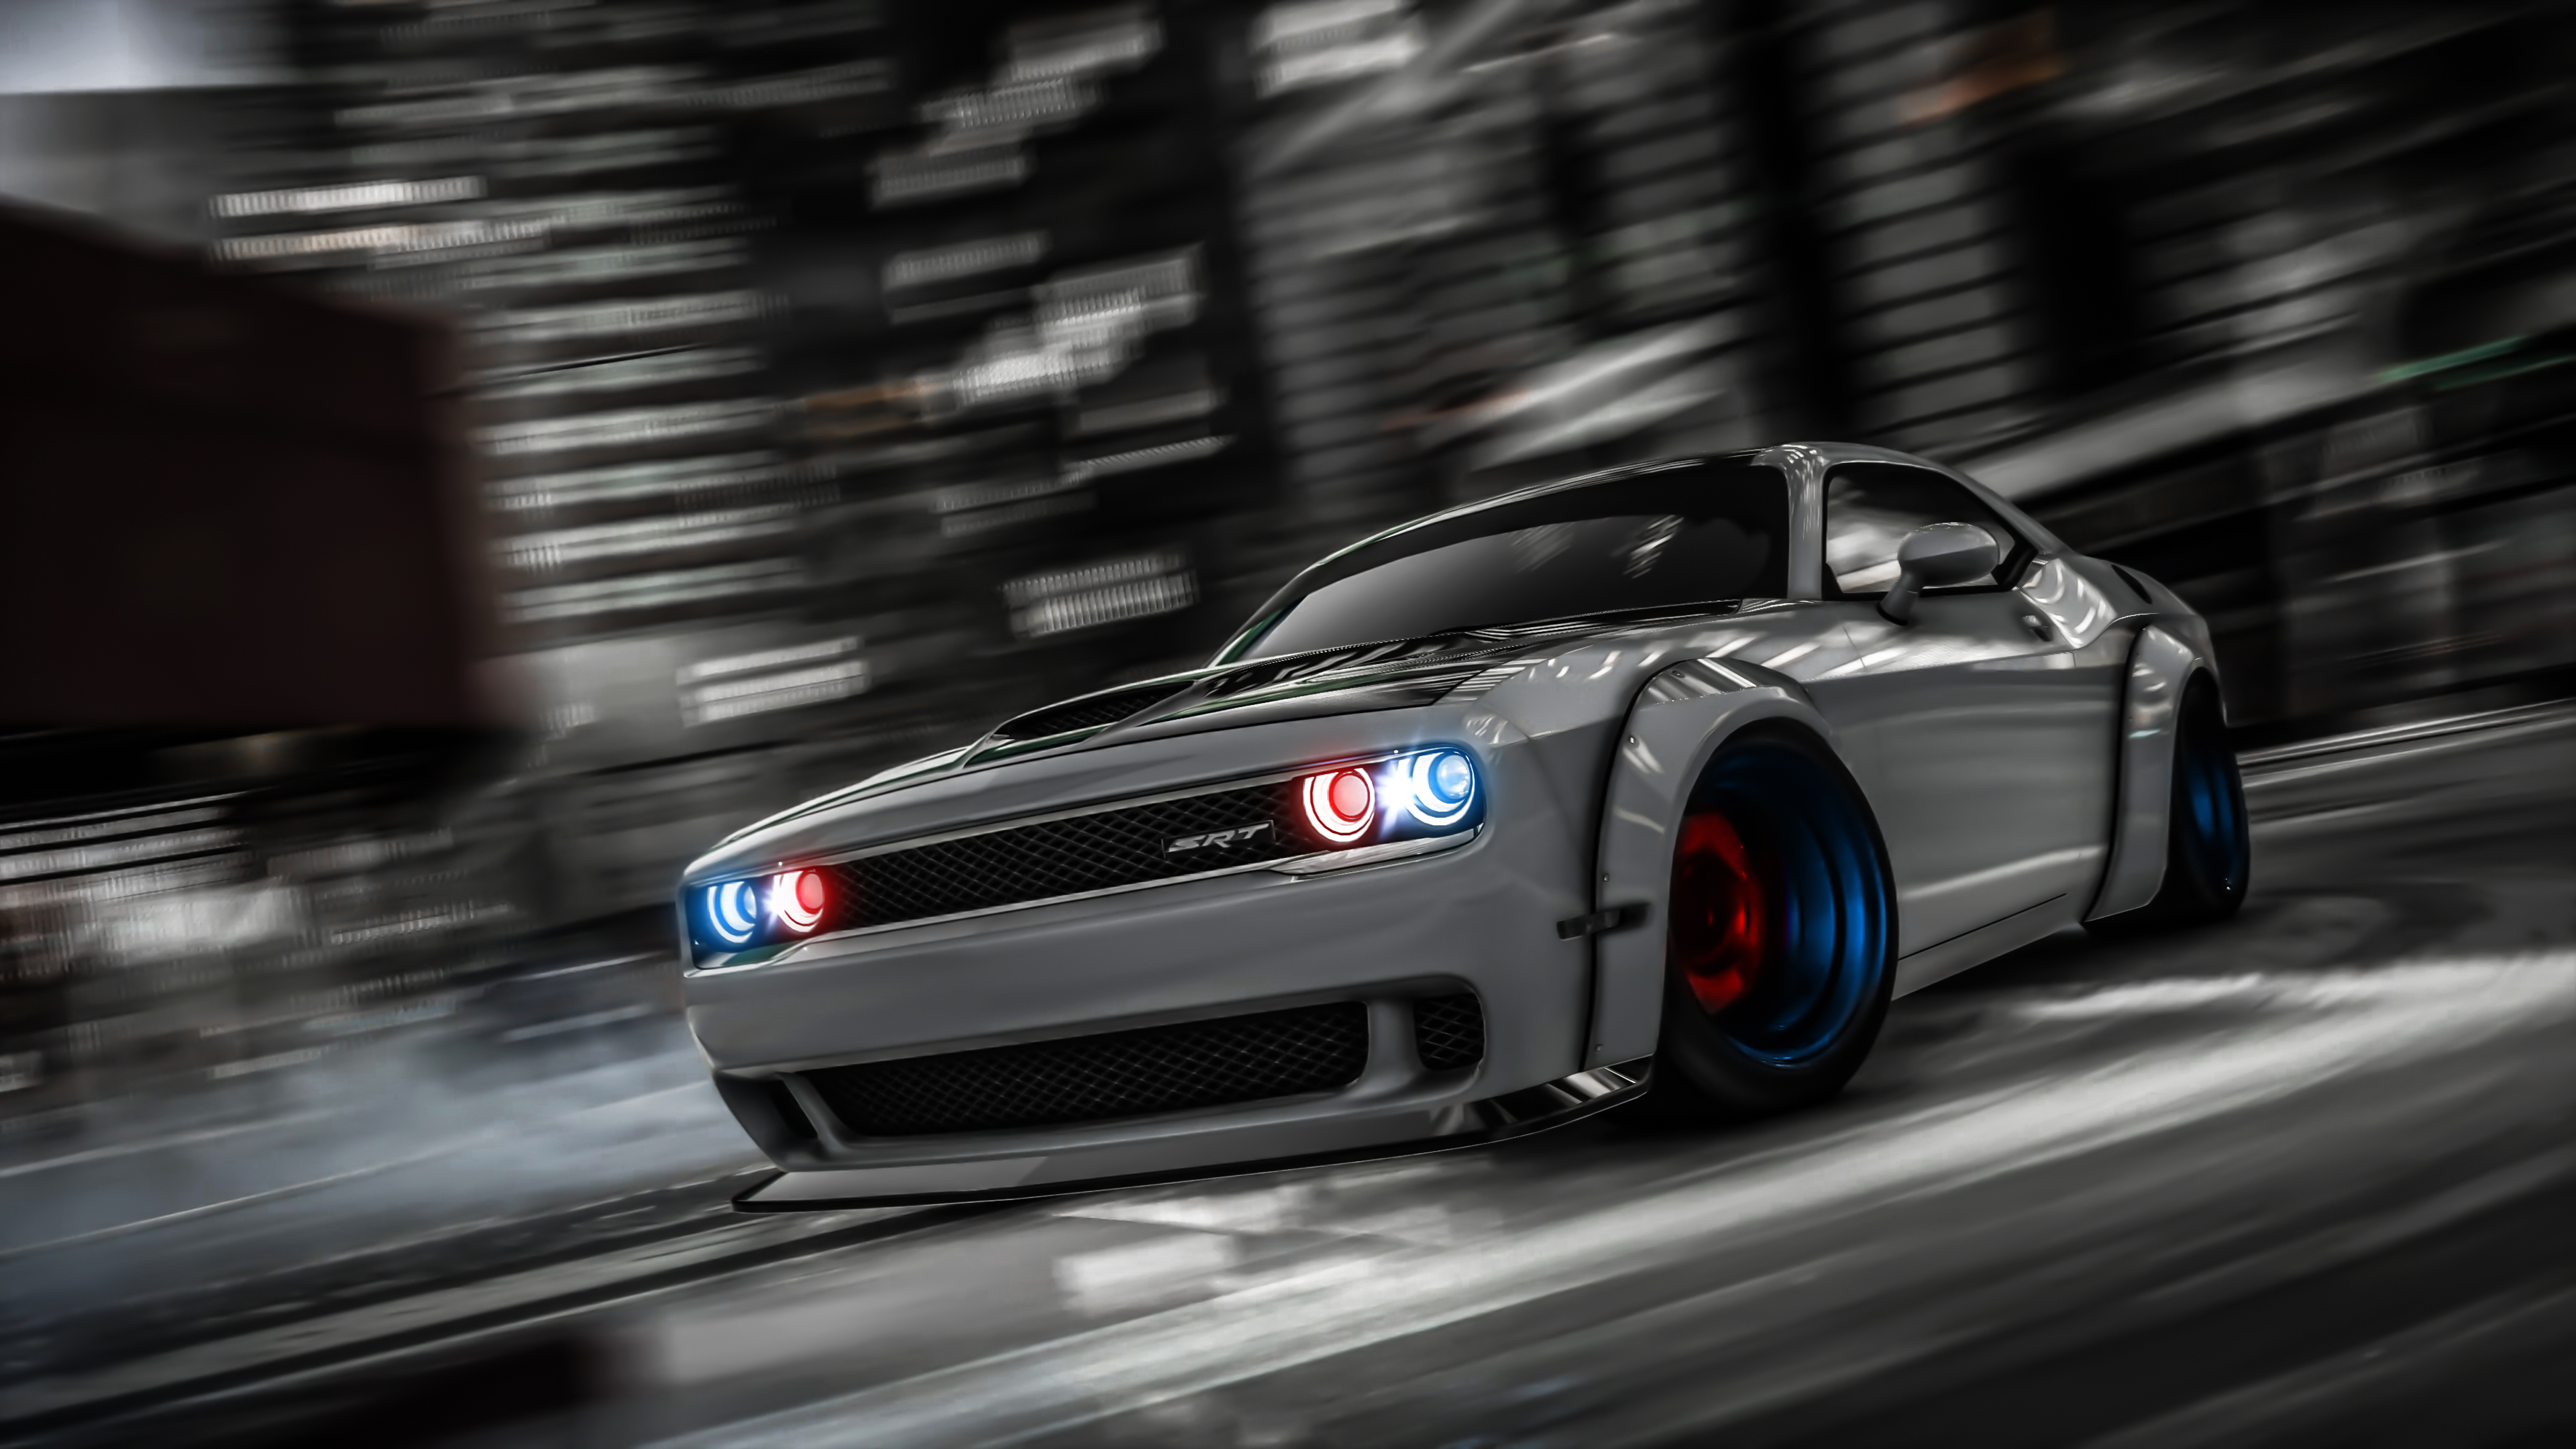 Wallpaper 4k Dodge Challenger Drifting Gta V 4k Wallpapers